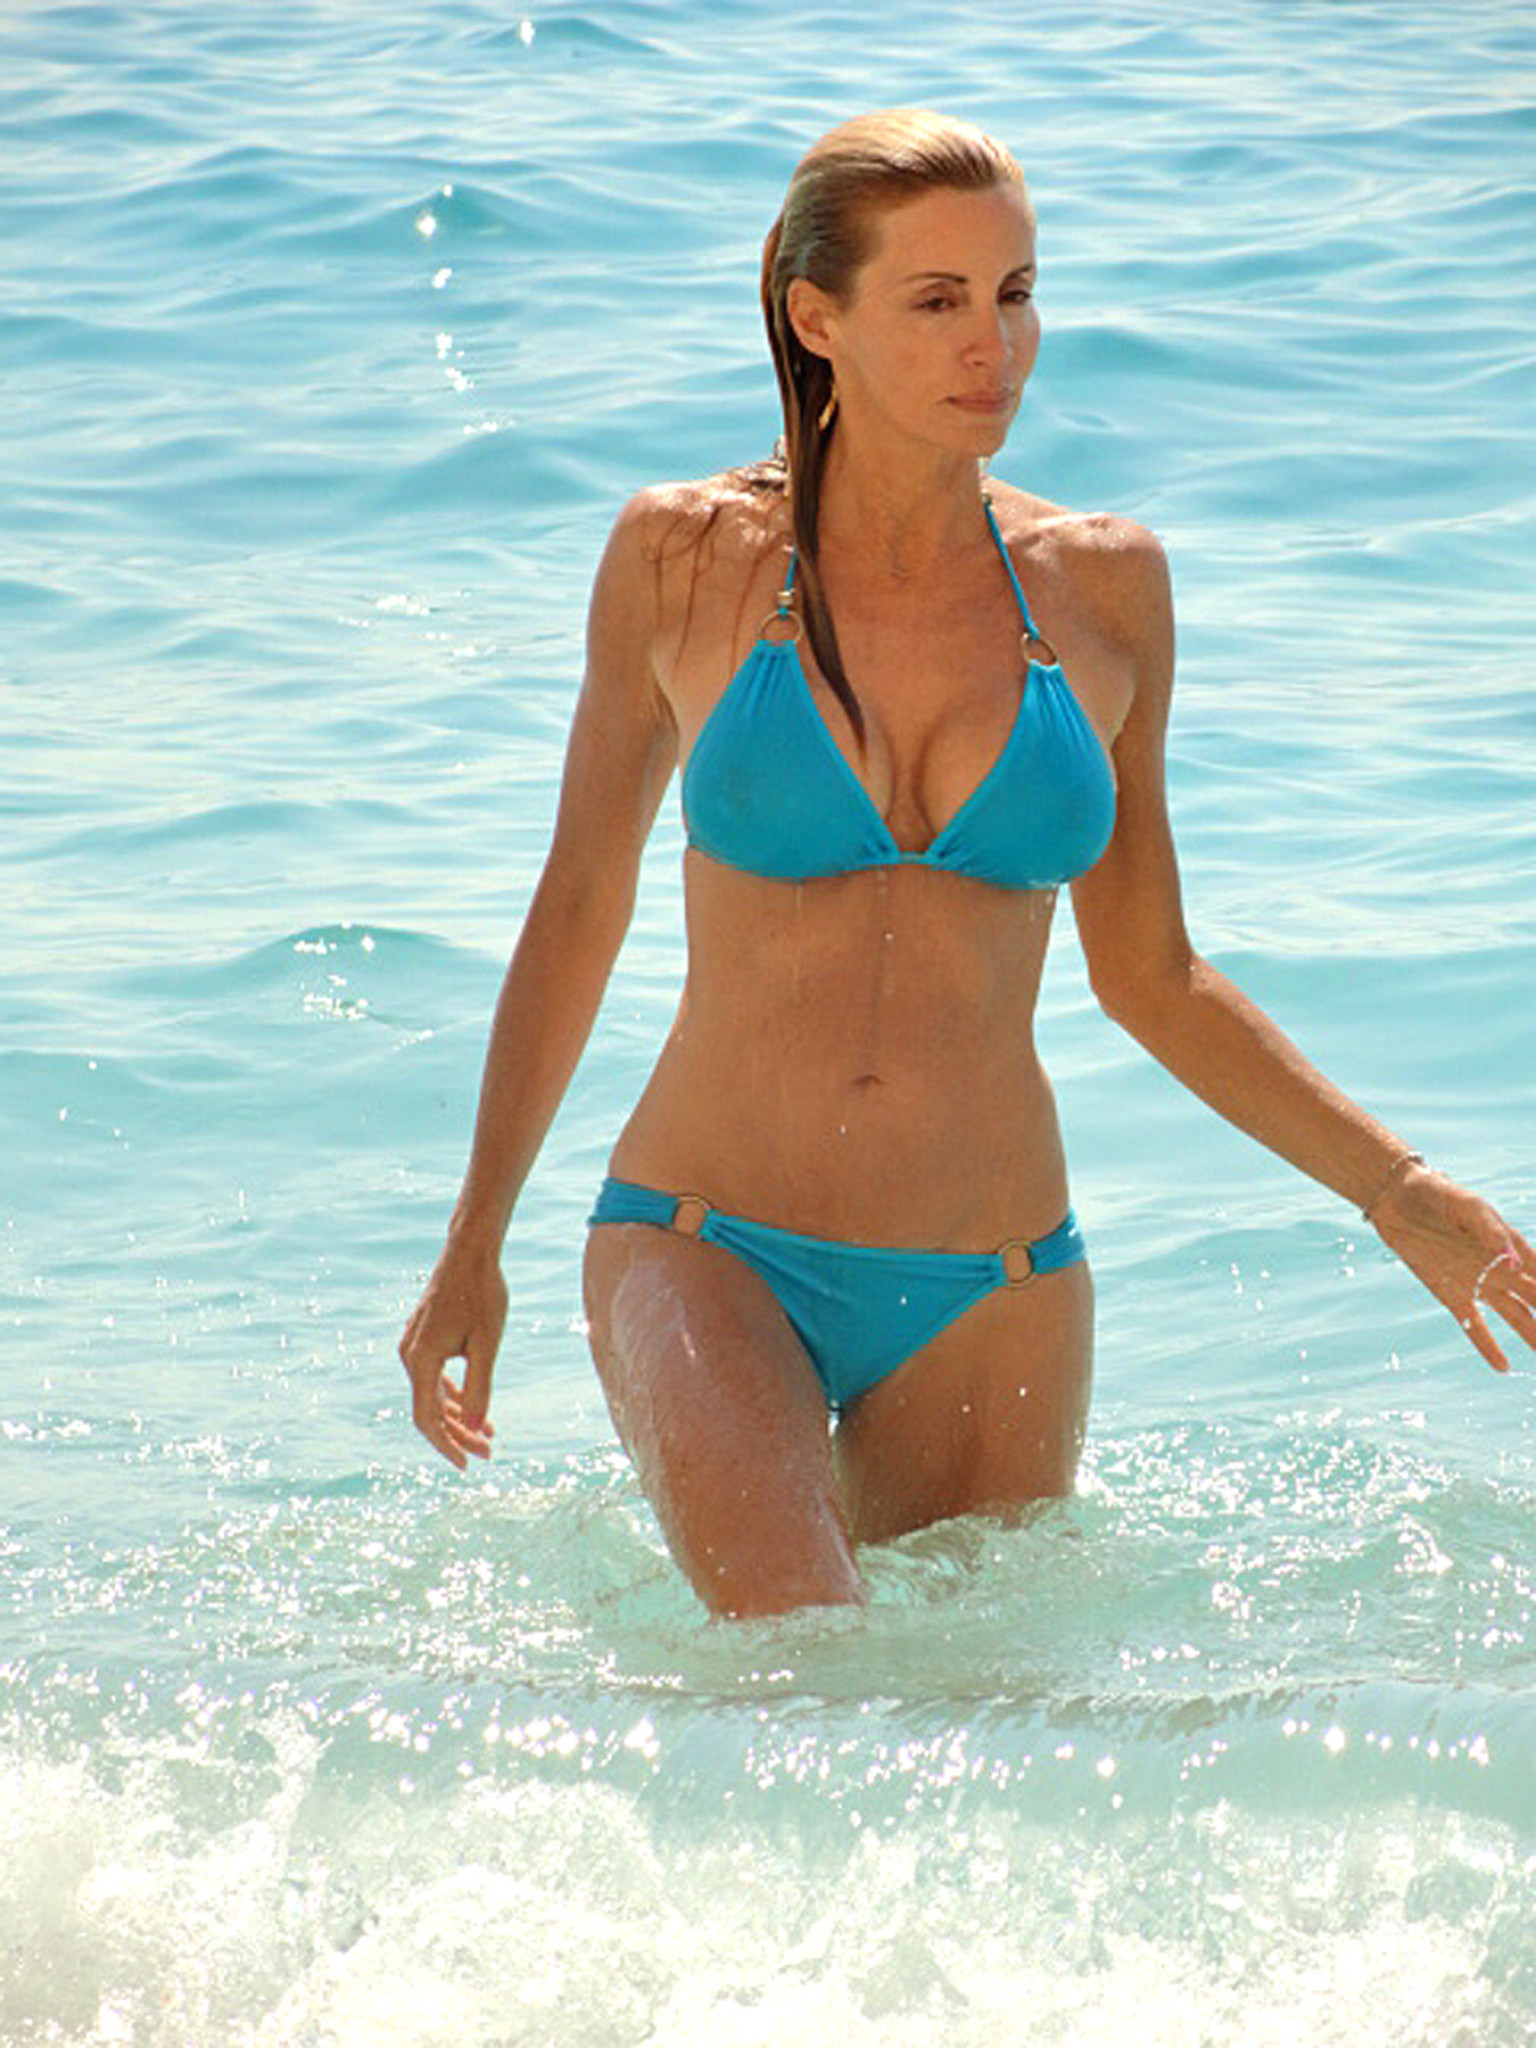 Entertaining real housewives camille grammer bikini that can